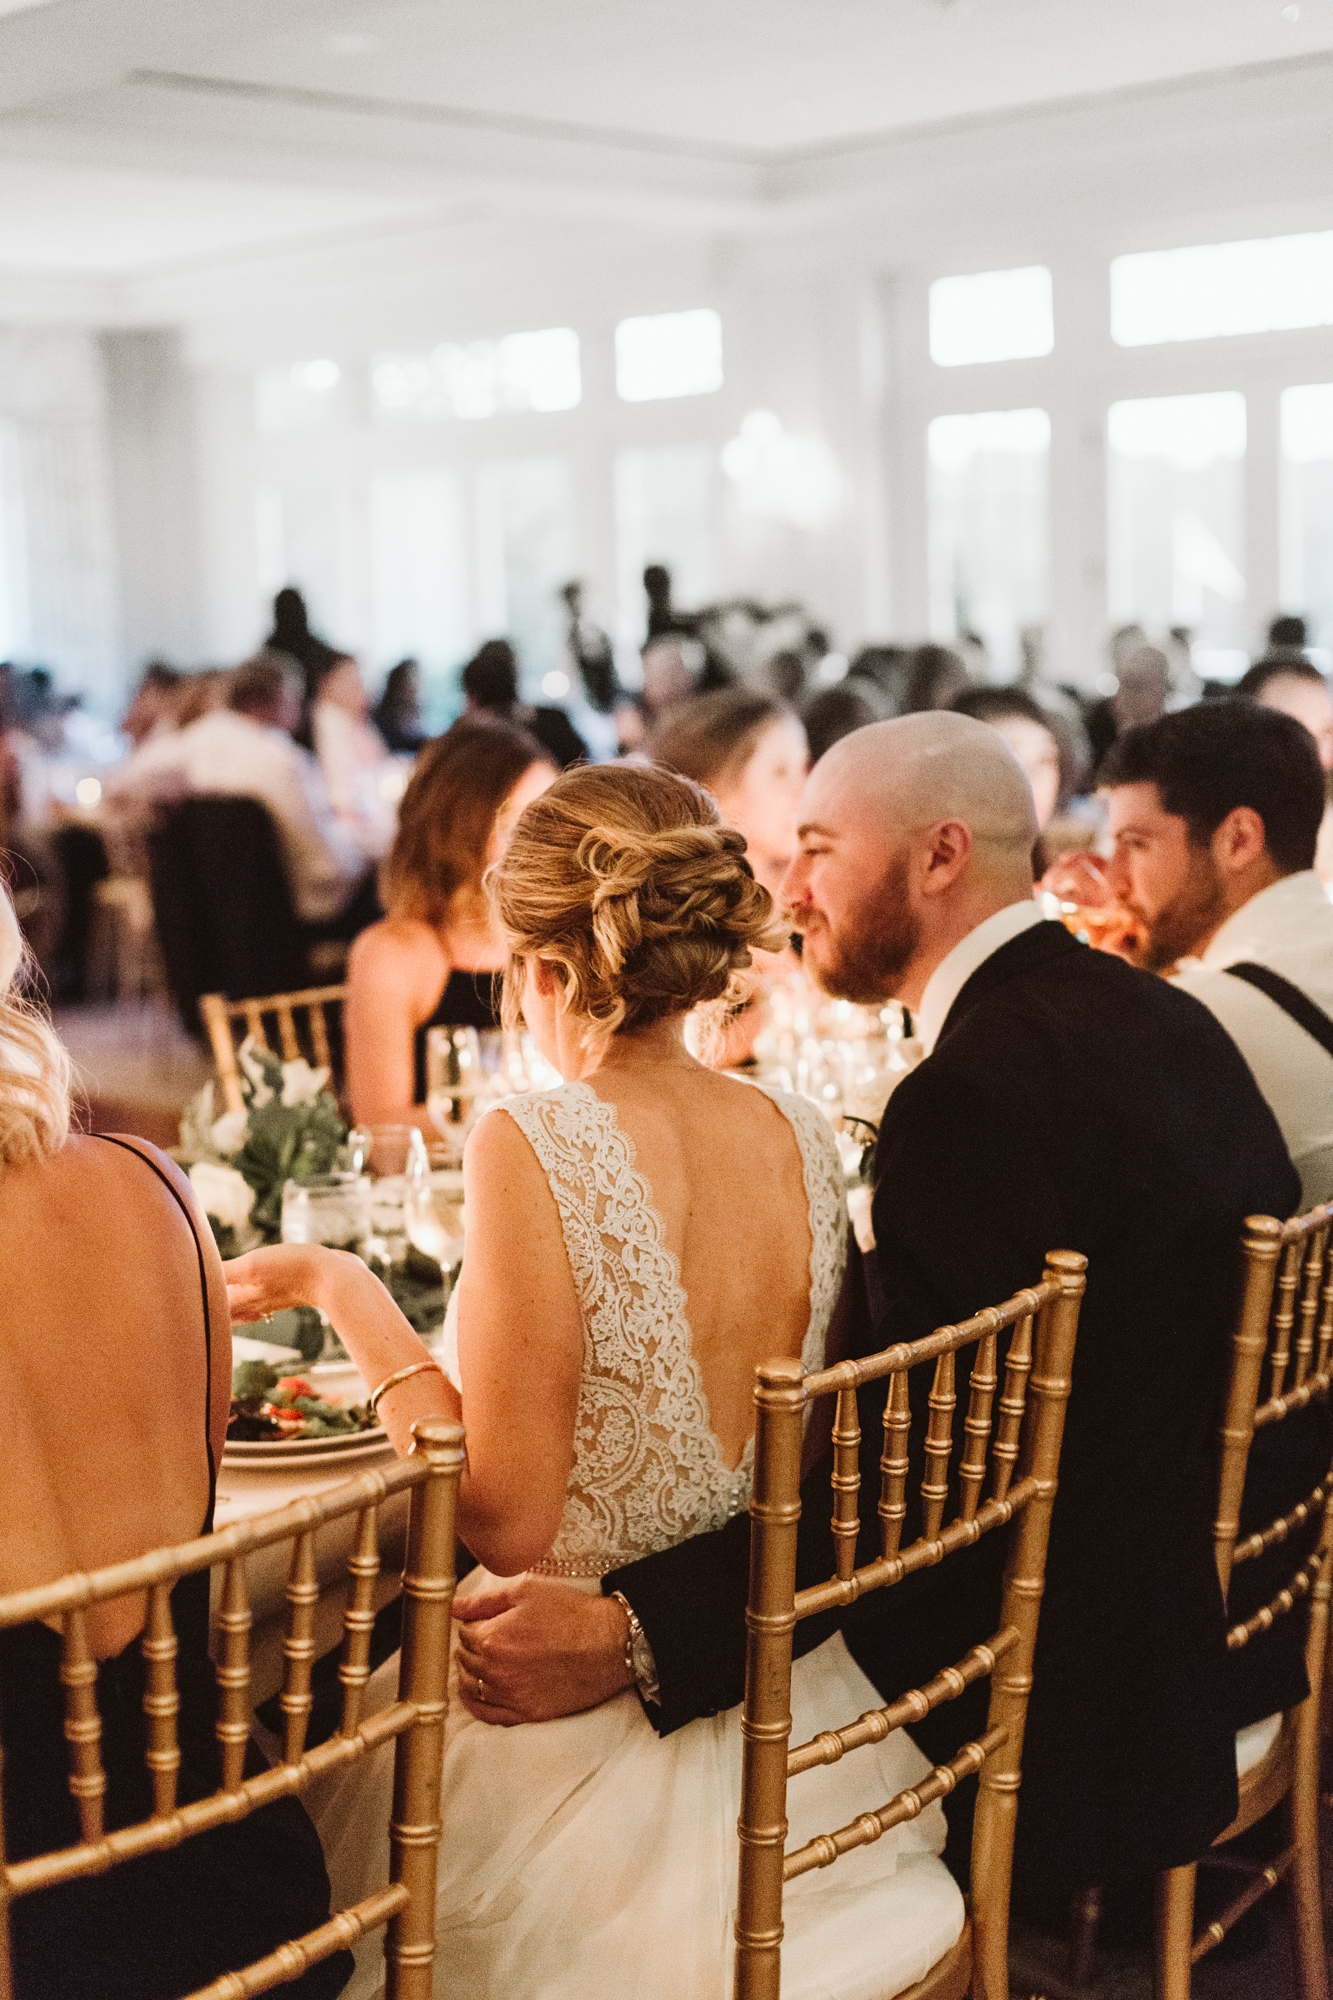 Elegant, Columbia Country Club, Chevy Chase Maryland, Baltimore Wedding Photographer, Classic, Traditional, Candid Photo of Bride and Groom at Reception, Romantic Candlelit Photo, Sweet Hairafter